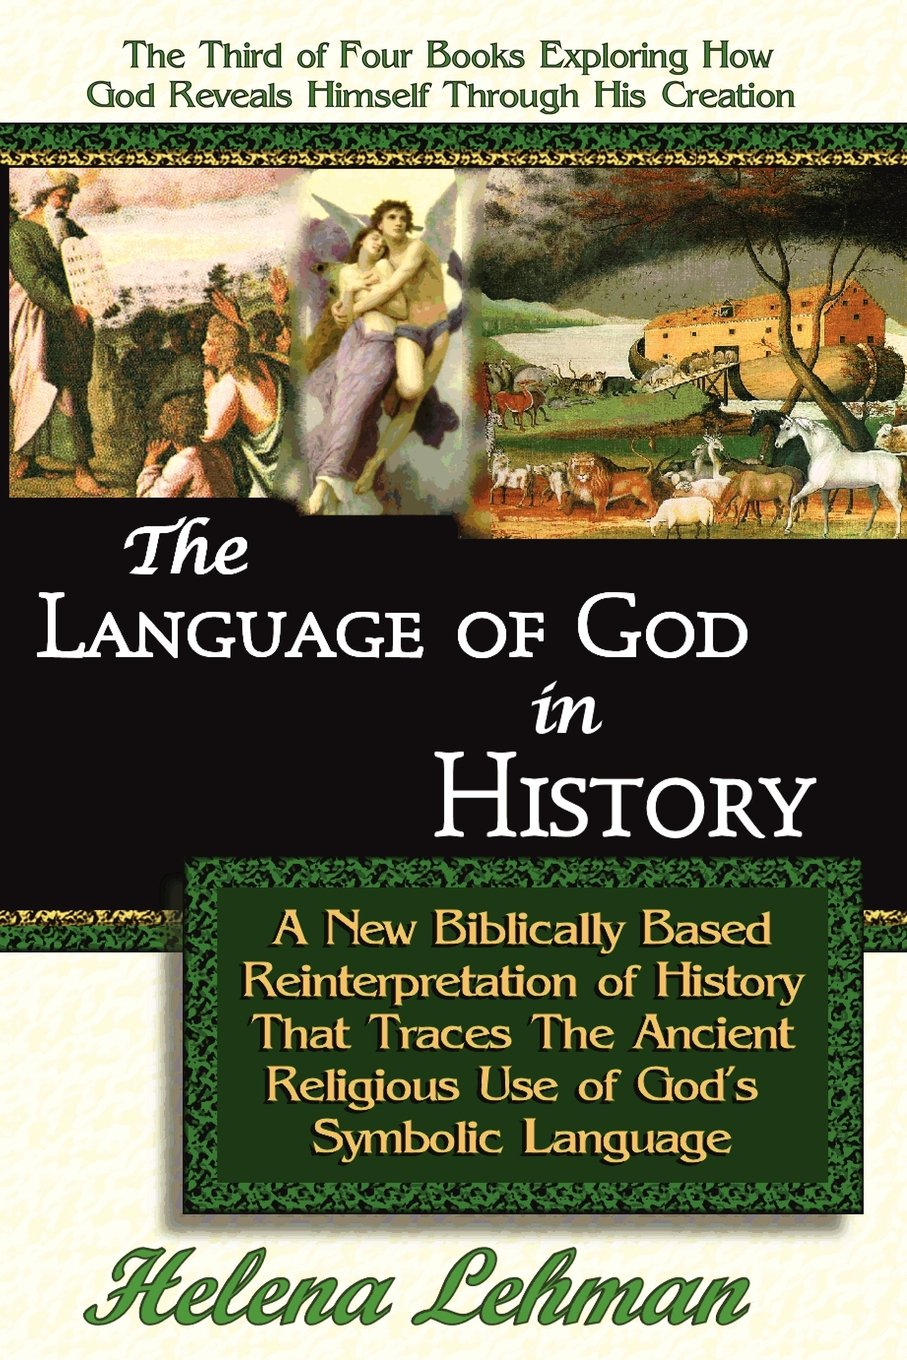 The Language of God in History, A New Biblically Based Reinterpretation of History That Traces The Ancient Religious Use of God's Symbolic Language by Brand: Pillar of Enoch Ministry